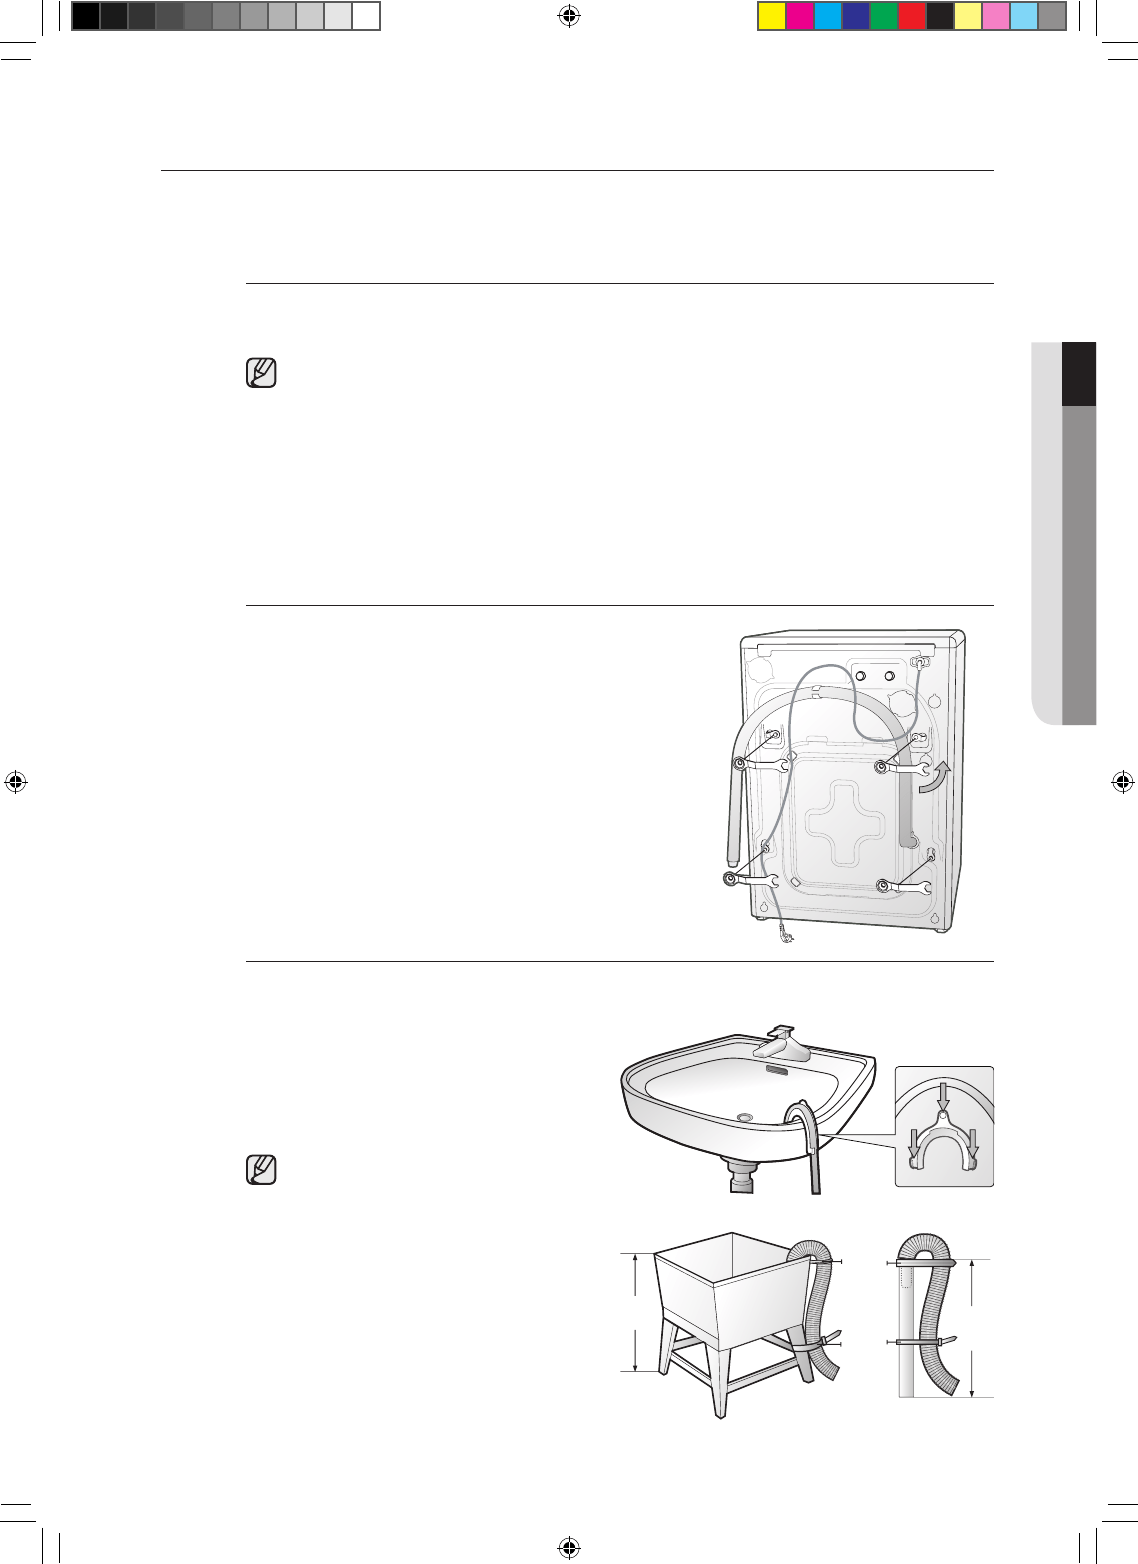 Page 9 of Samsung Washer/Dryer BFW36W User Guide